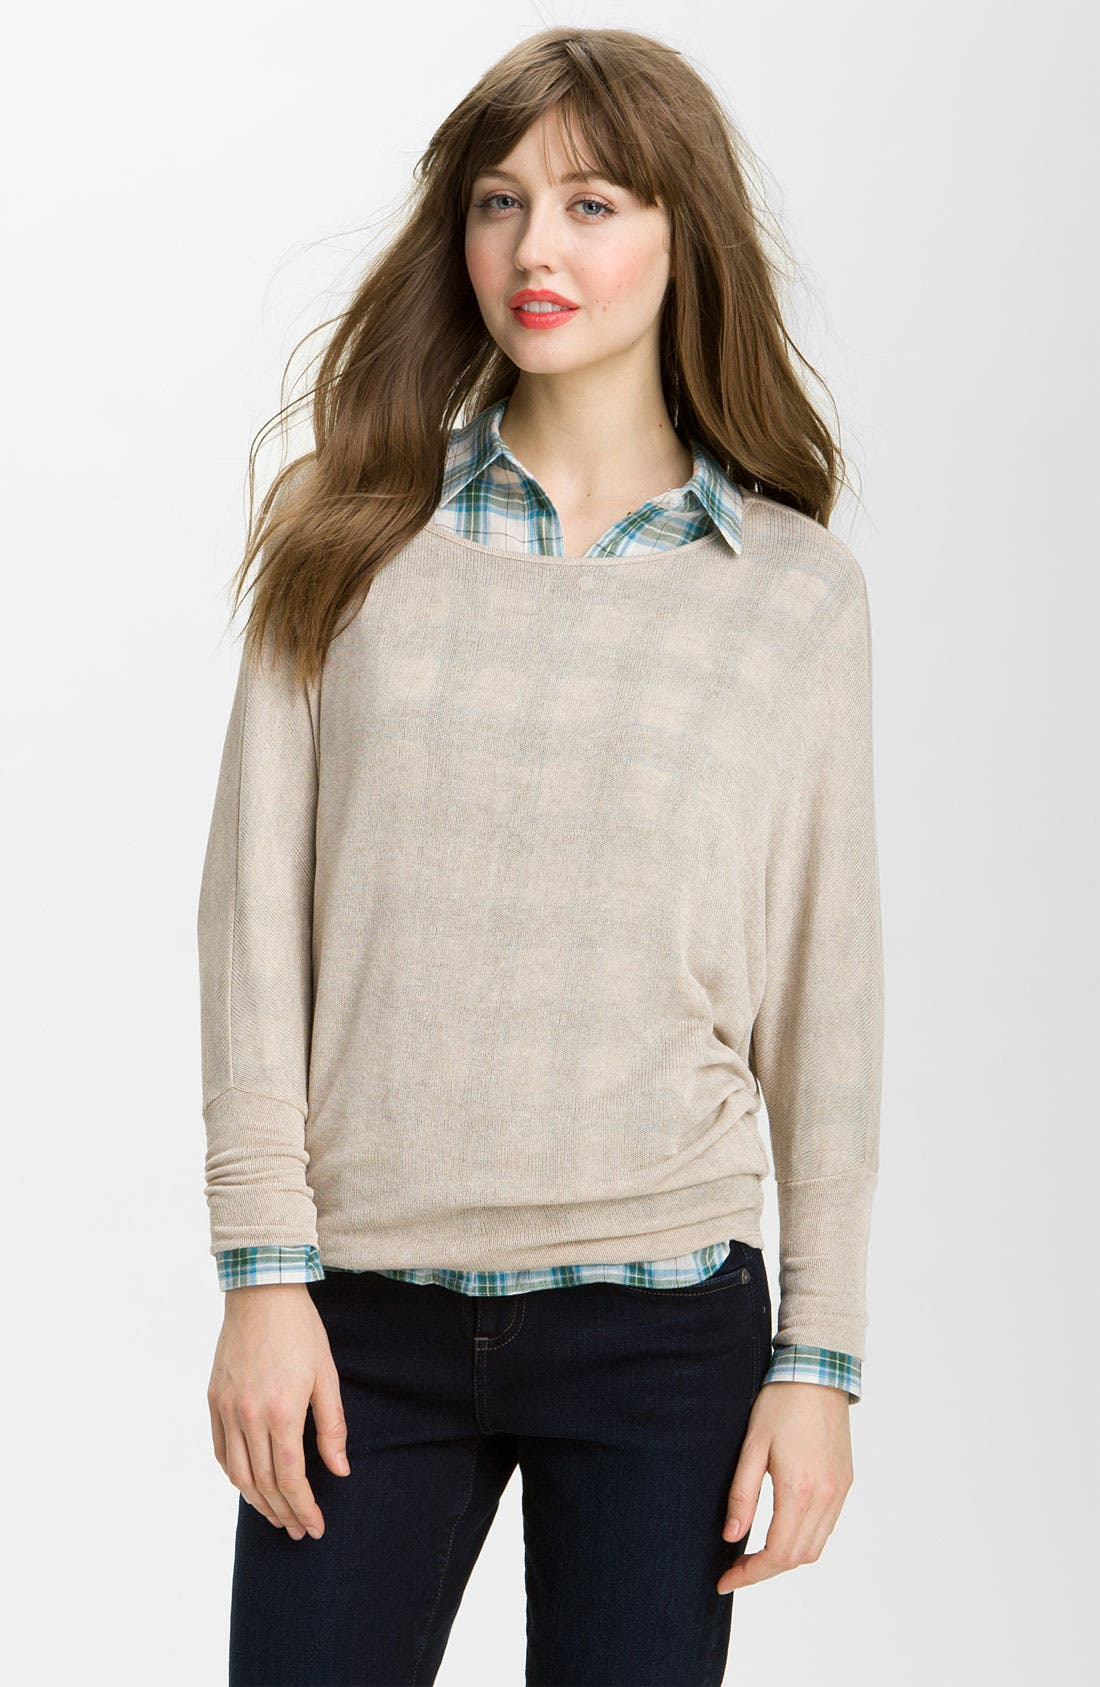 Alternate Image 1 Selected - KUT from the Kloth Batwing Sleeve Sweater Knit Top